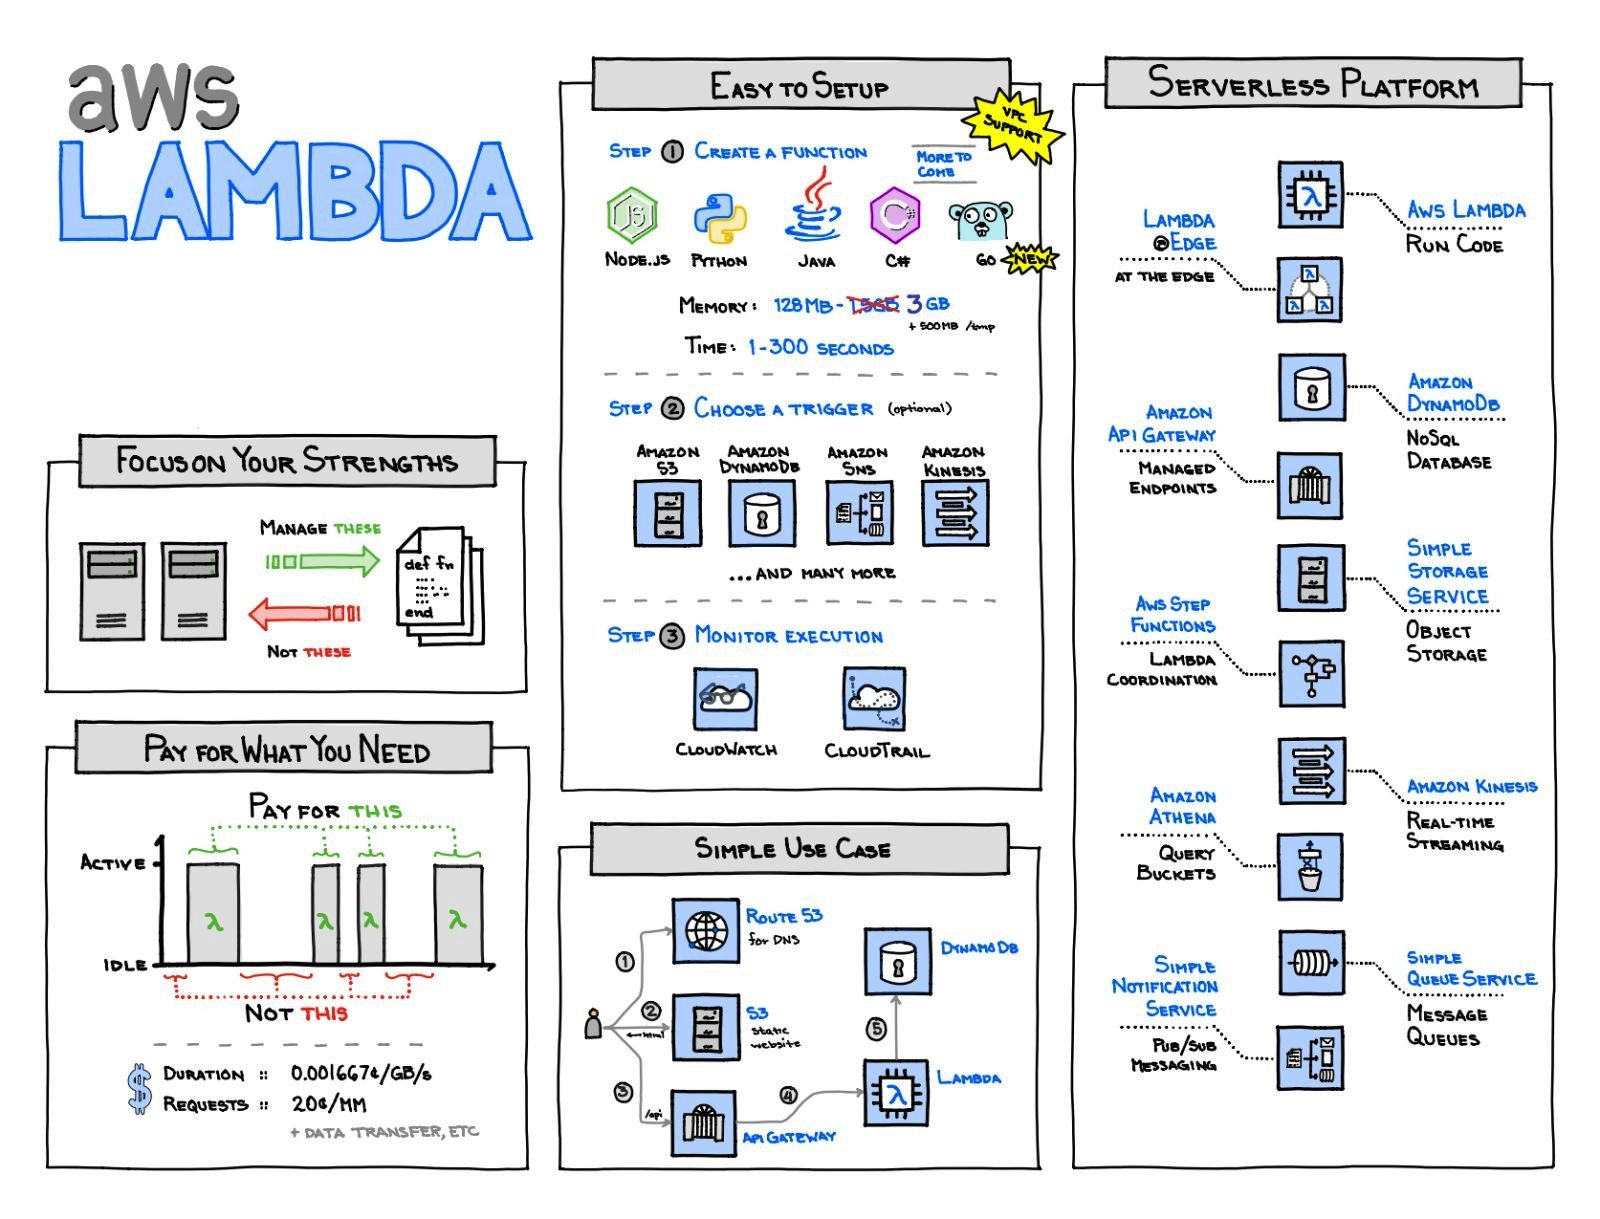 AWS Lambda<br>Source: https://www.awsgeek.com/posts/aws-lambda-notes/